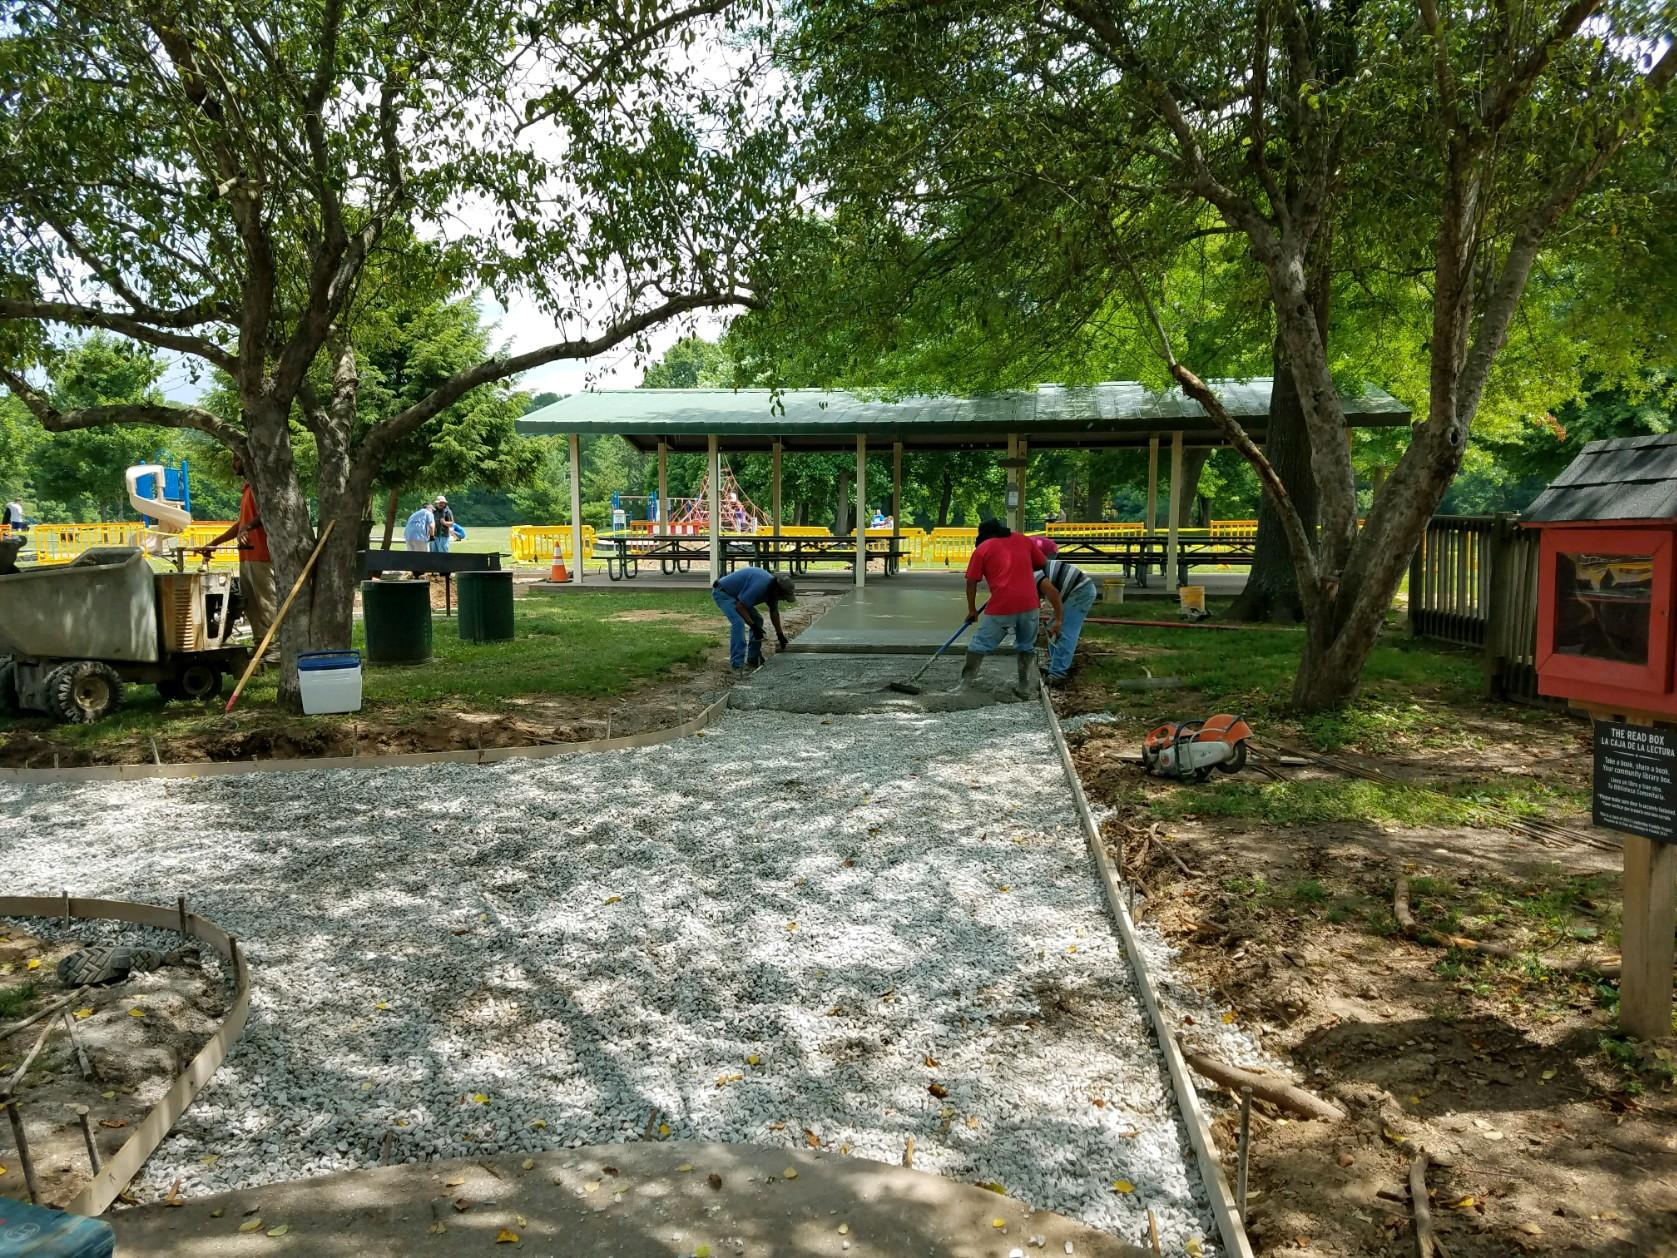 Work continues on upgrades to the Tinkerbell Pavilion at Pinkerton Park!